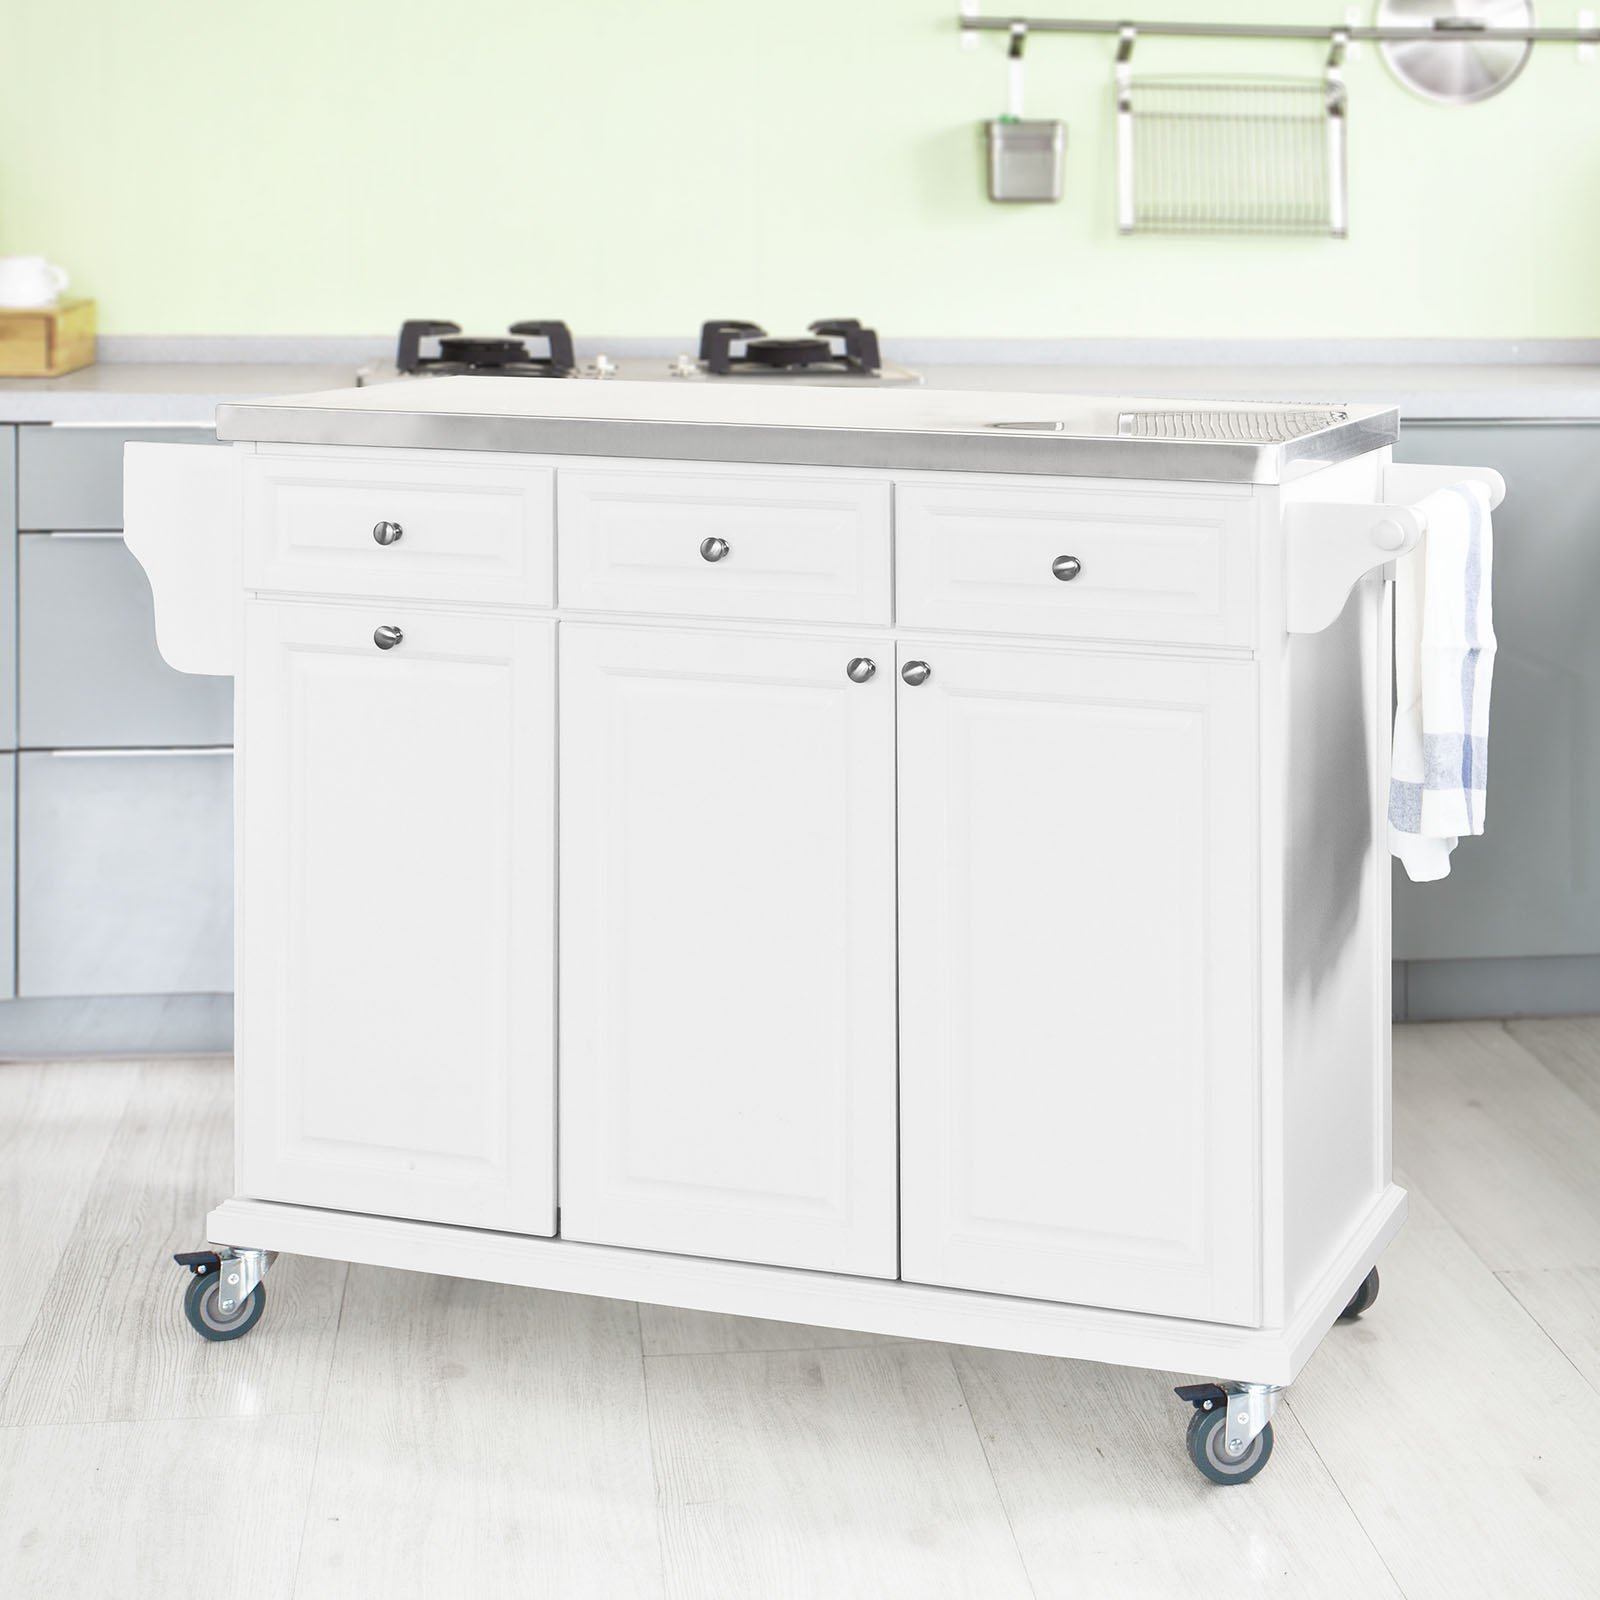 SoBuy?? White Luxury Kitchen Island Storage Trolley Cart, Kitchen Cabinet with Stainless Steel Worktop, FKW33-W by SoBuy by SoBuy (Image #8)